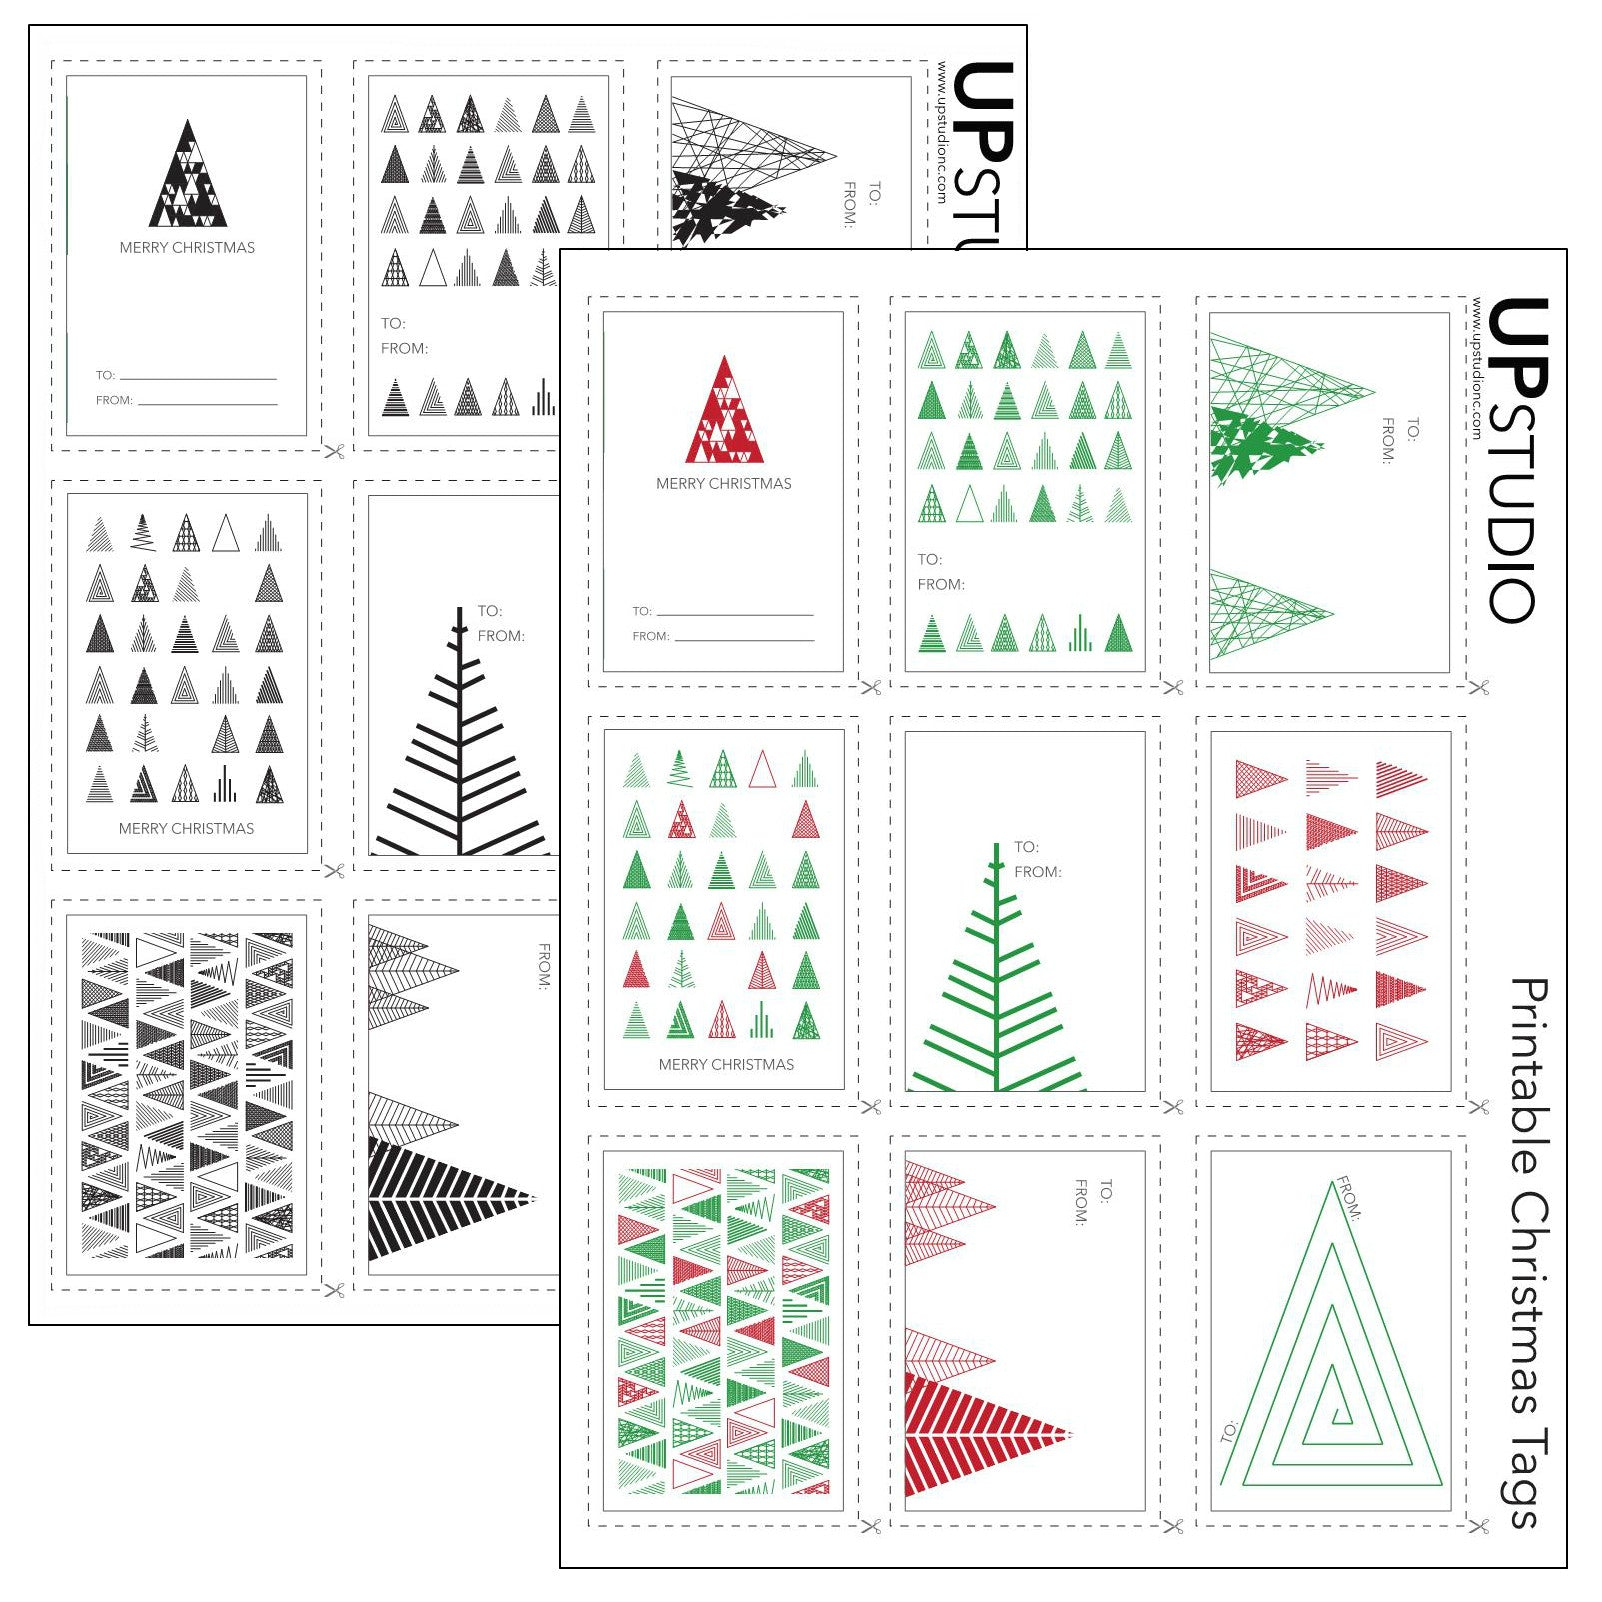 picture relating to Christmas Tags Printable named UPstudio - Printable Xmas Tags Cost-free Down load